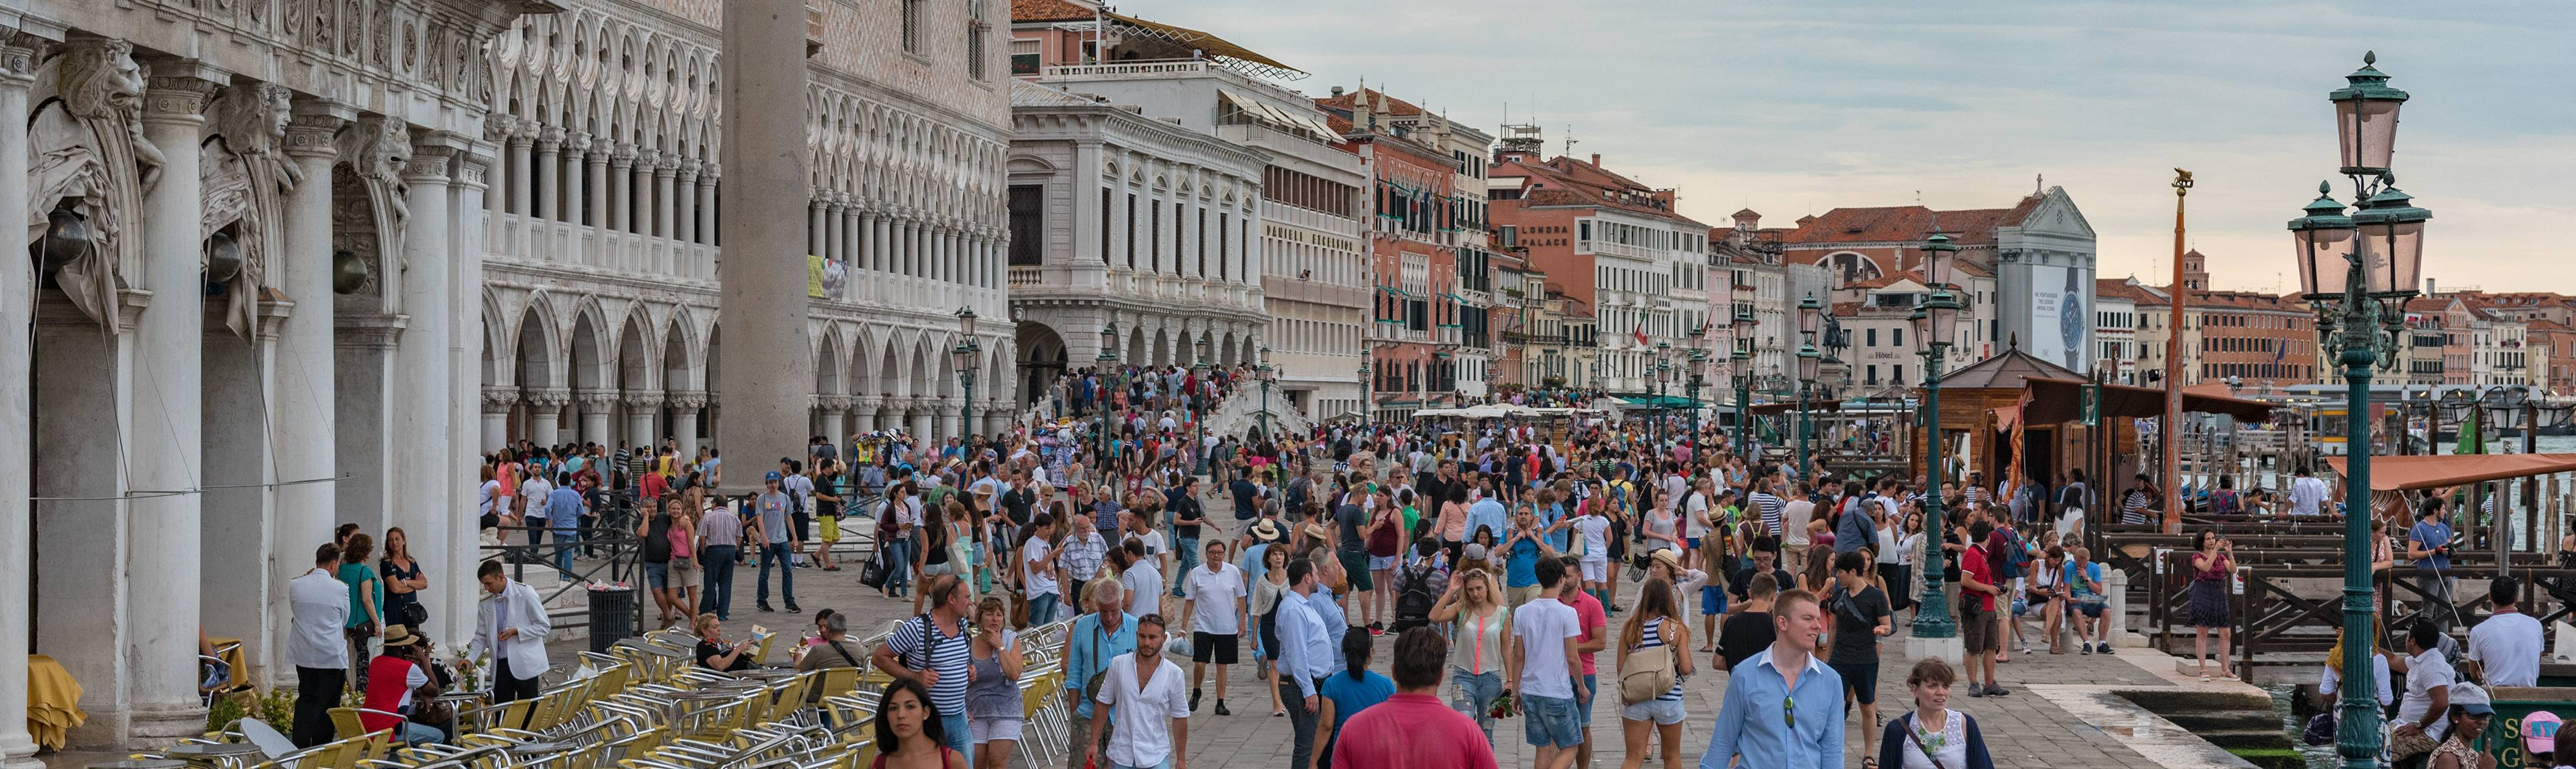 Visitors fill Piazza San Marco in Venice, Italy